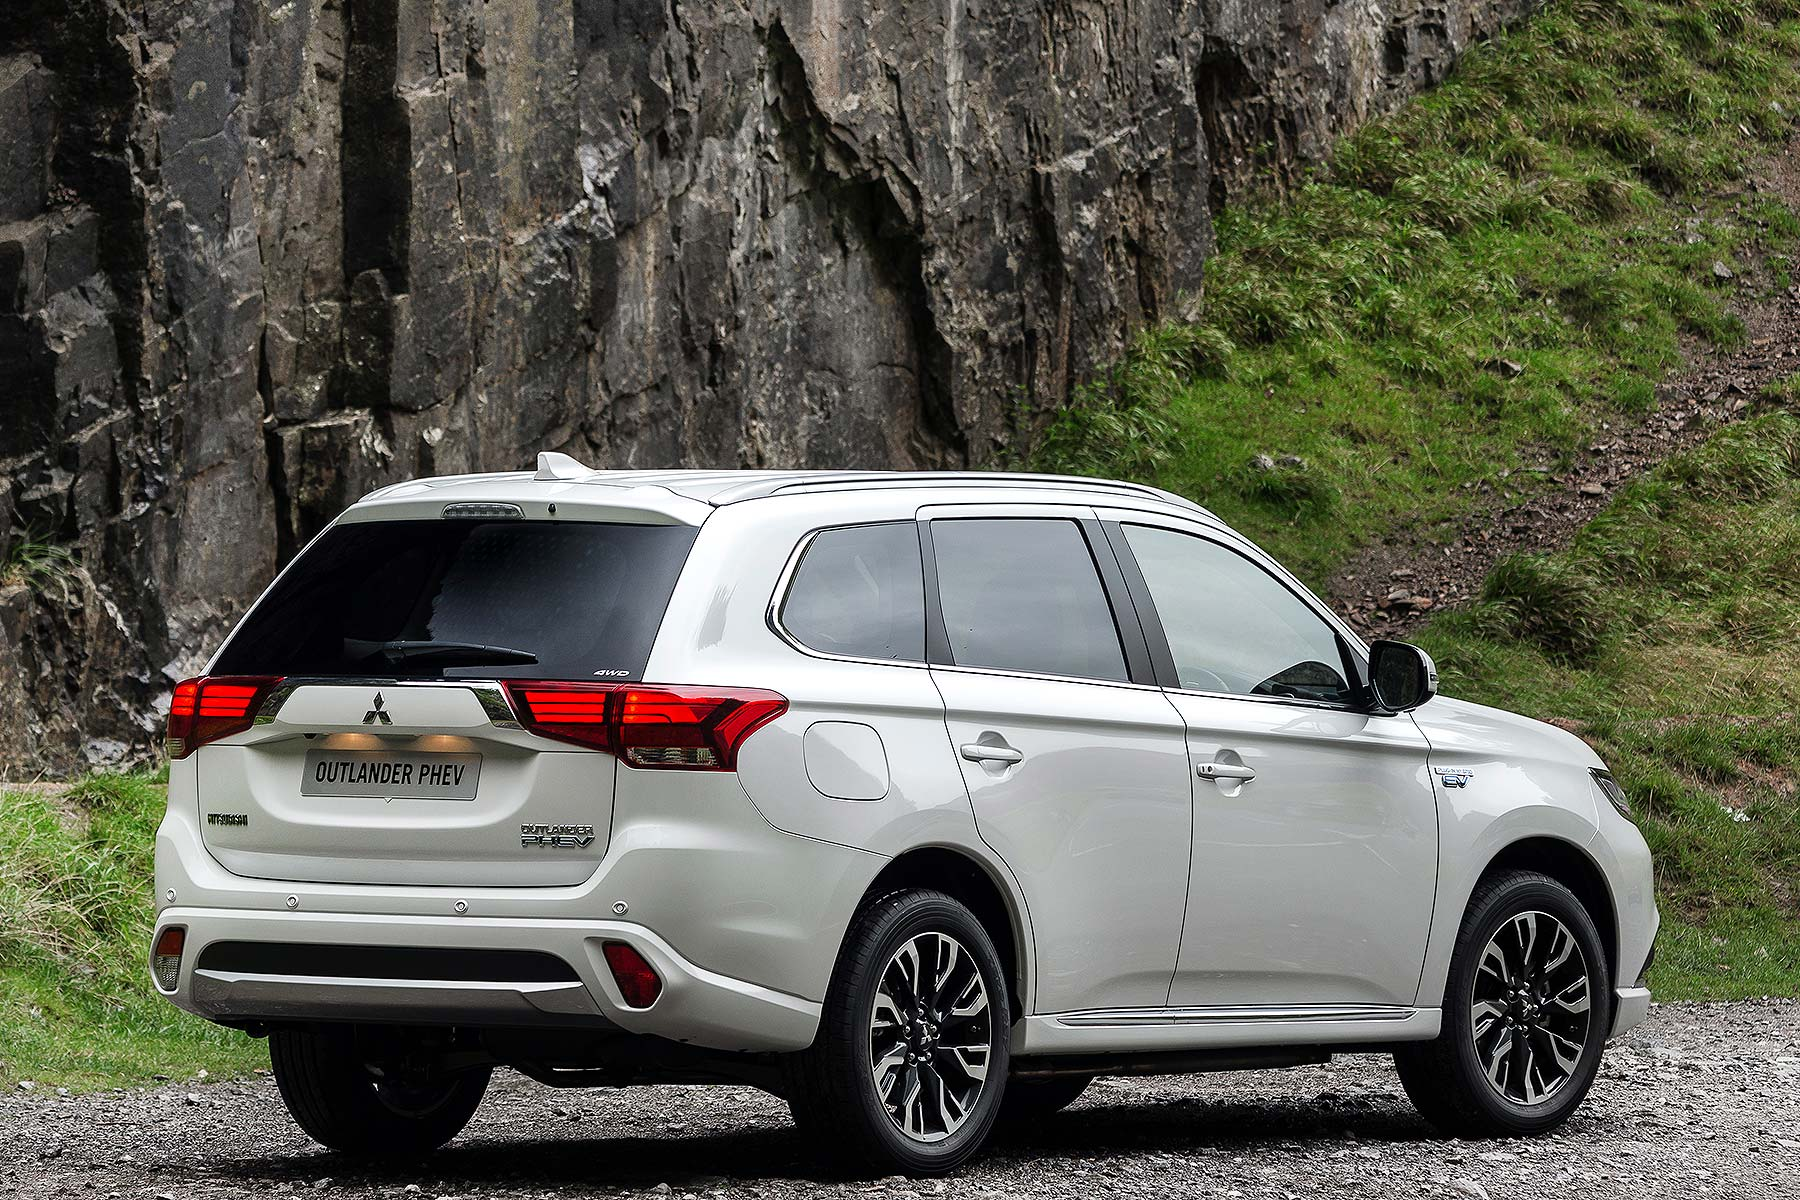 2016 mitsubishi outlander phev review uk first drive motoring research. Black Bedroom Furniture Sets. Home Design Ideas